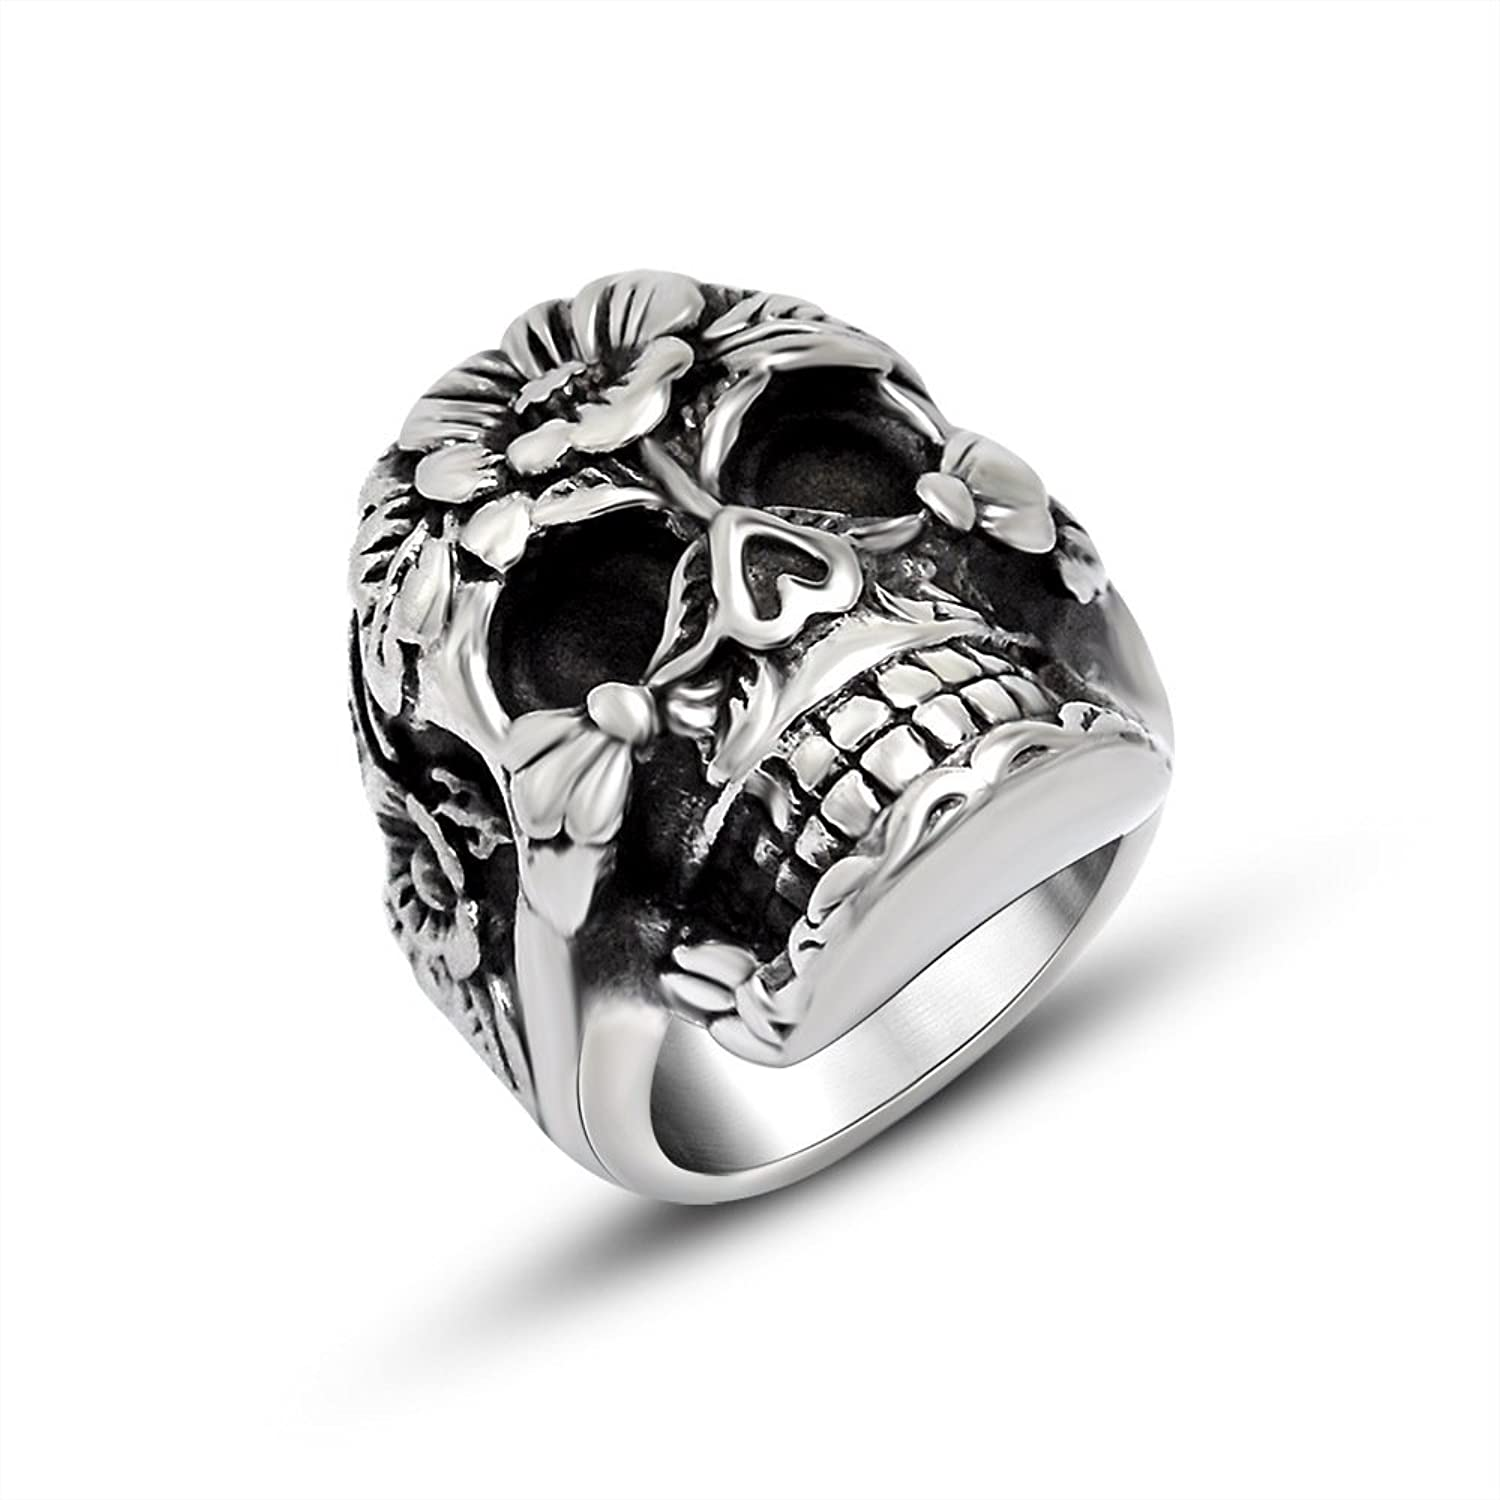 FANSING Jewelry Stainless Steel Fashionable Flower Skull Rings